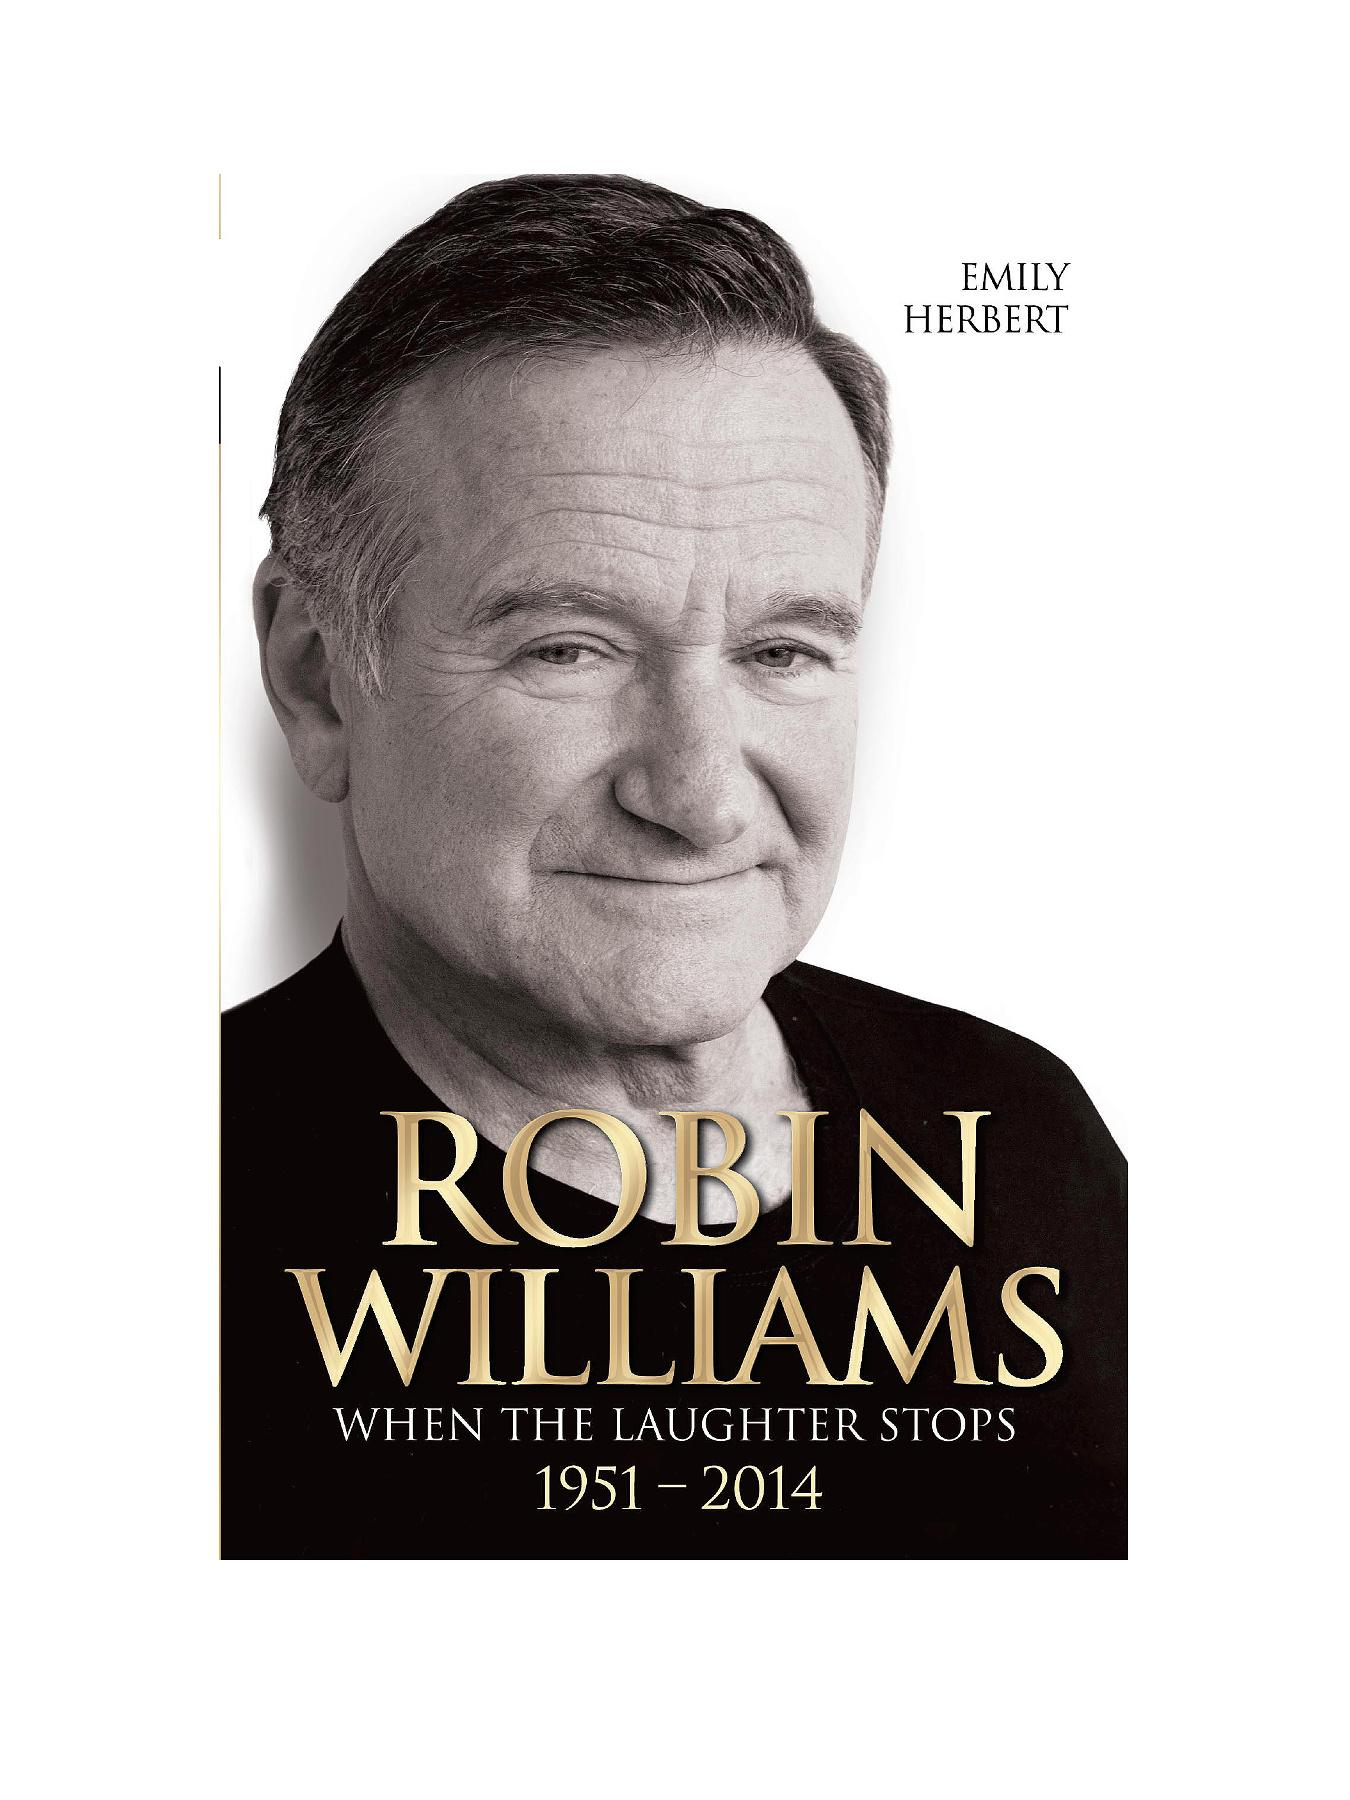 Robin Williams: When the Laughter Stops 1951 - 2014 - Paperback